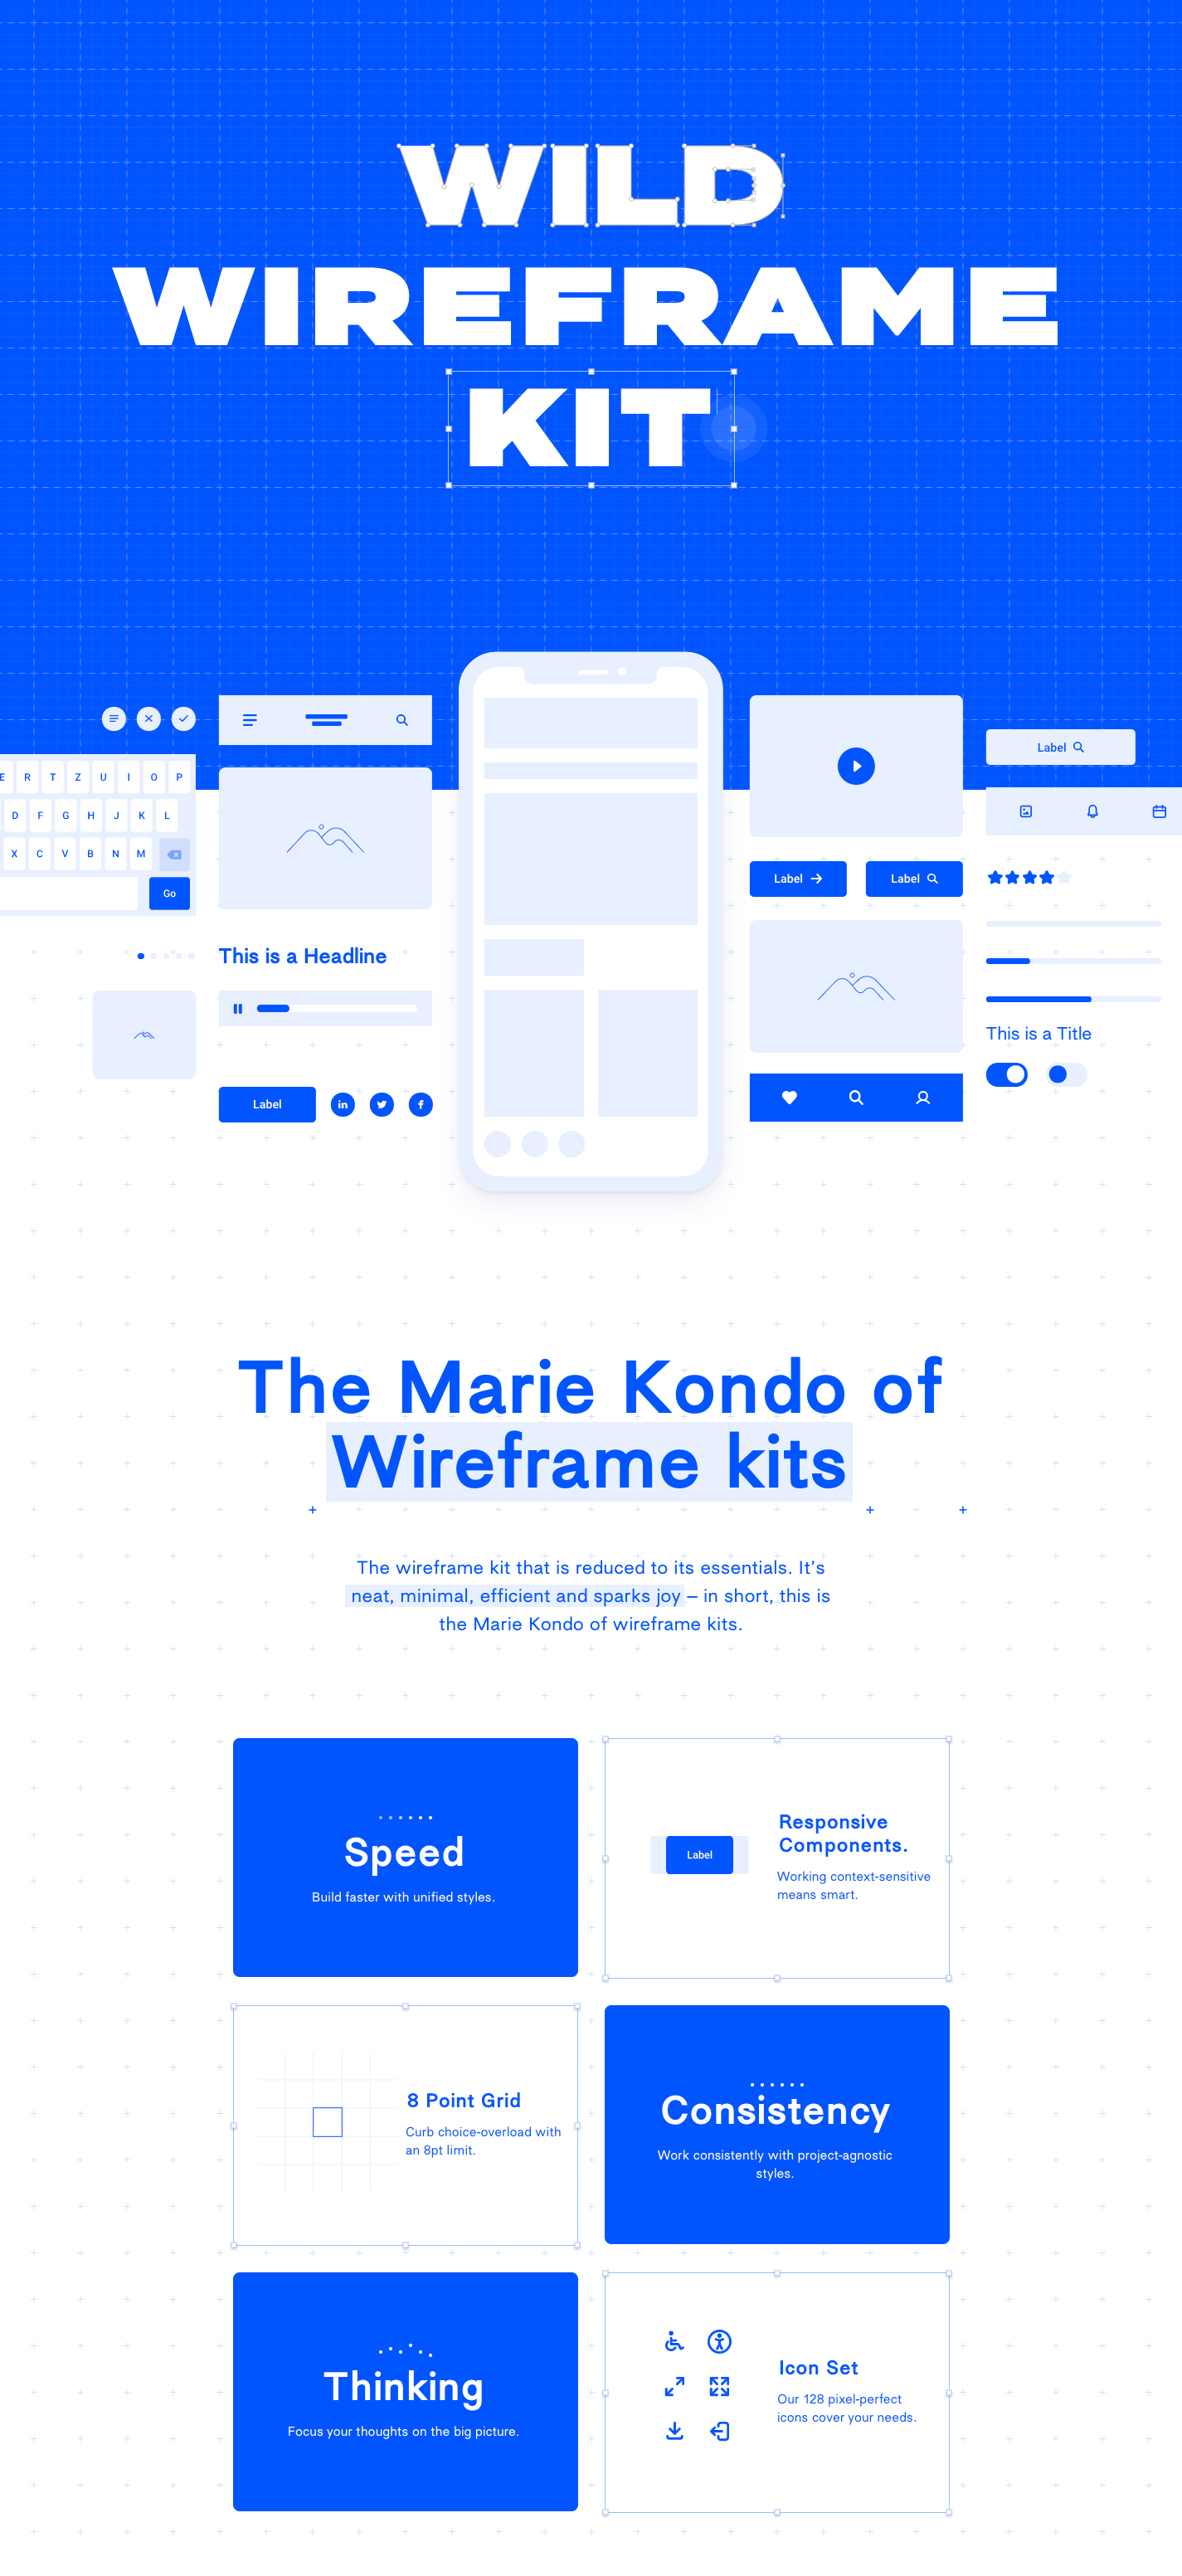 Wild Wireframe Kit for Sketch - The wireframe kit that is reduced to its essentials. It's neat, minimal, efficient and sparks joy – in short, this is the Marie Kondo of wireframe kits.